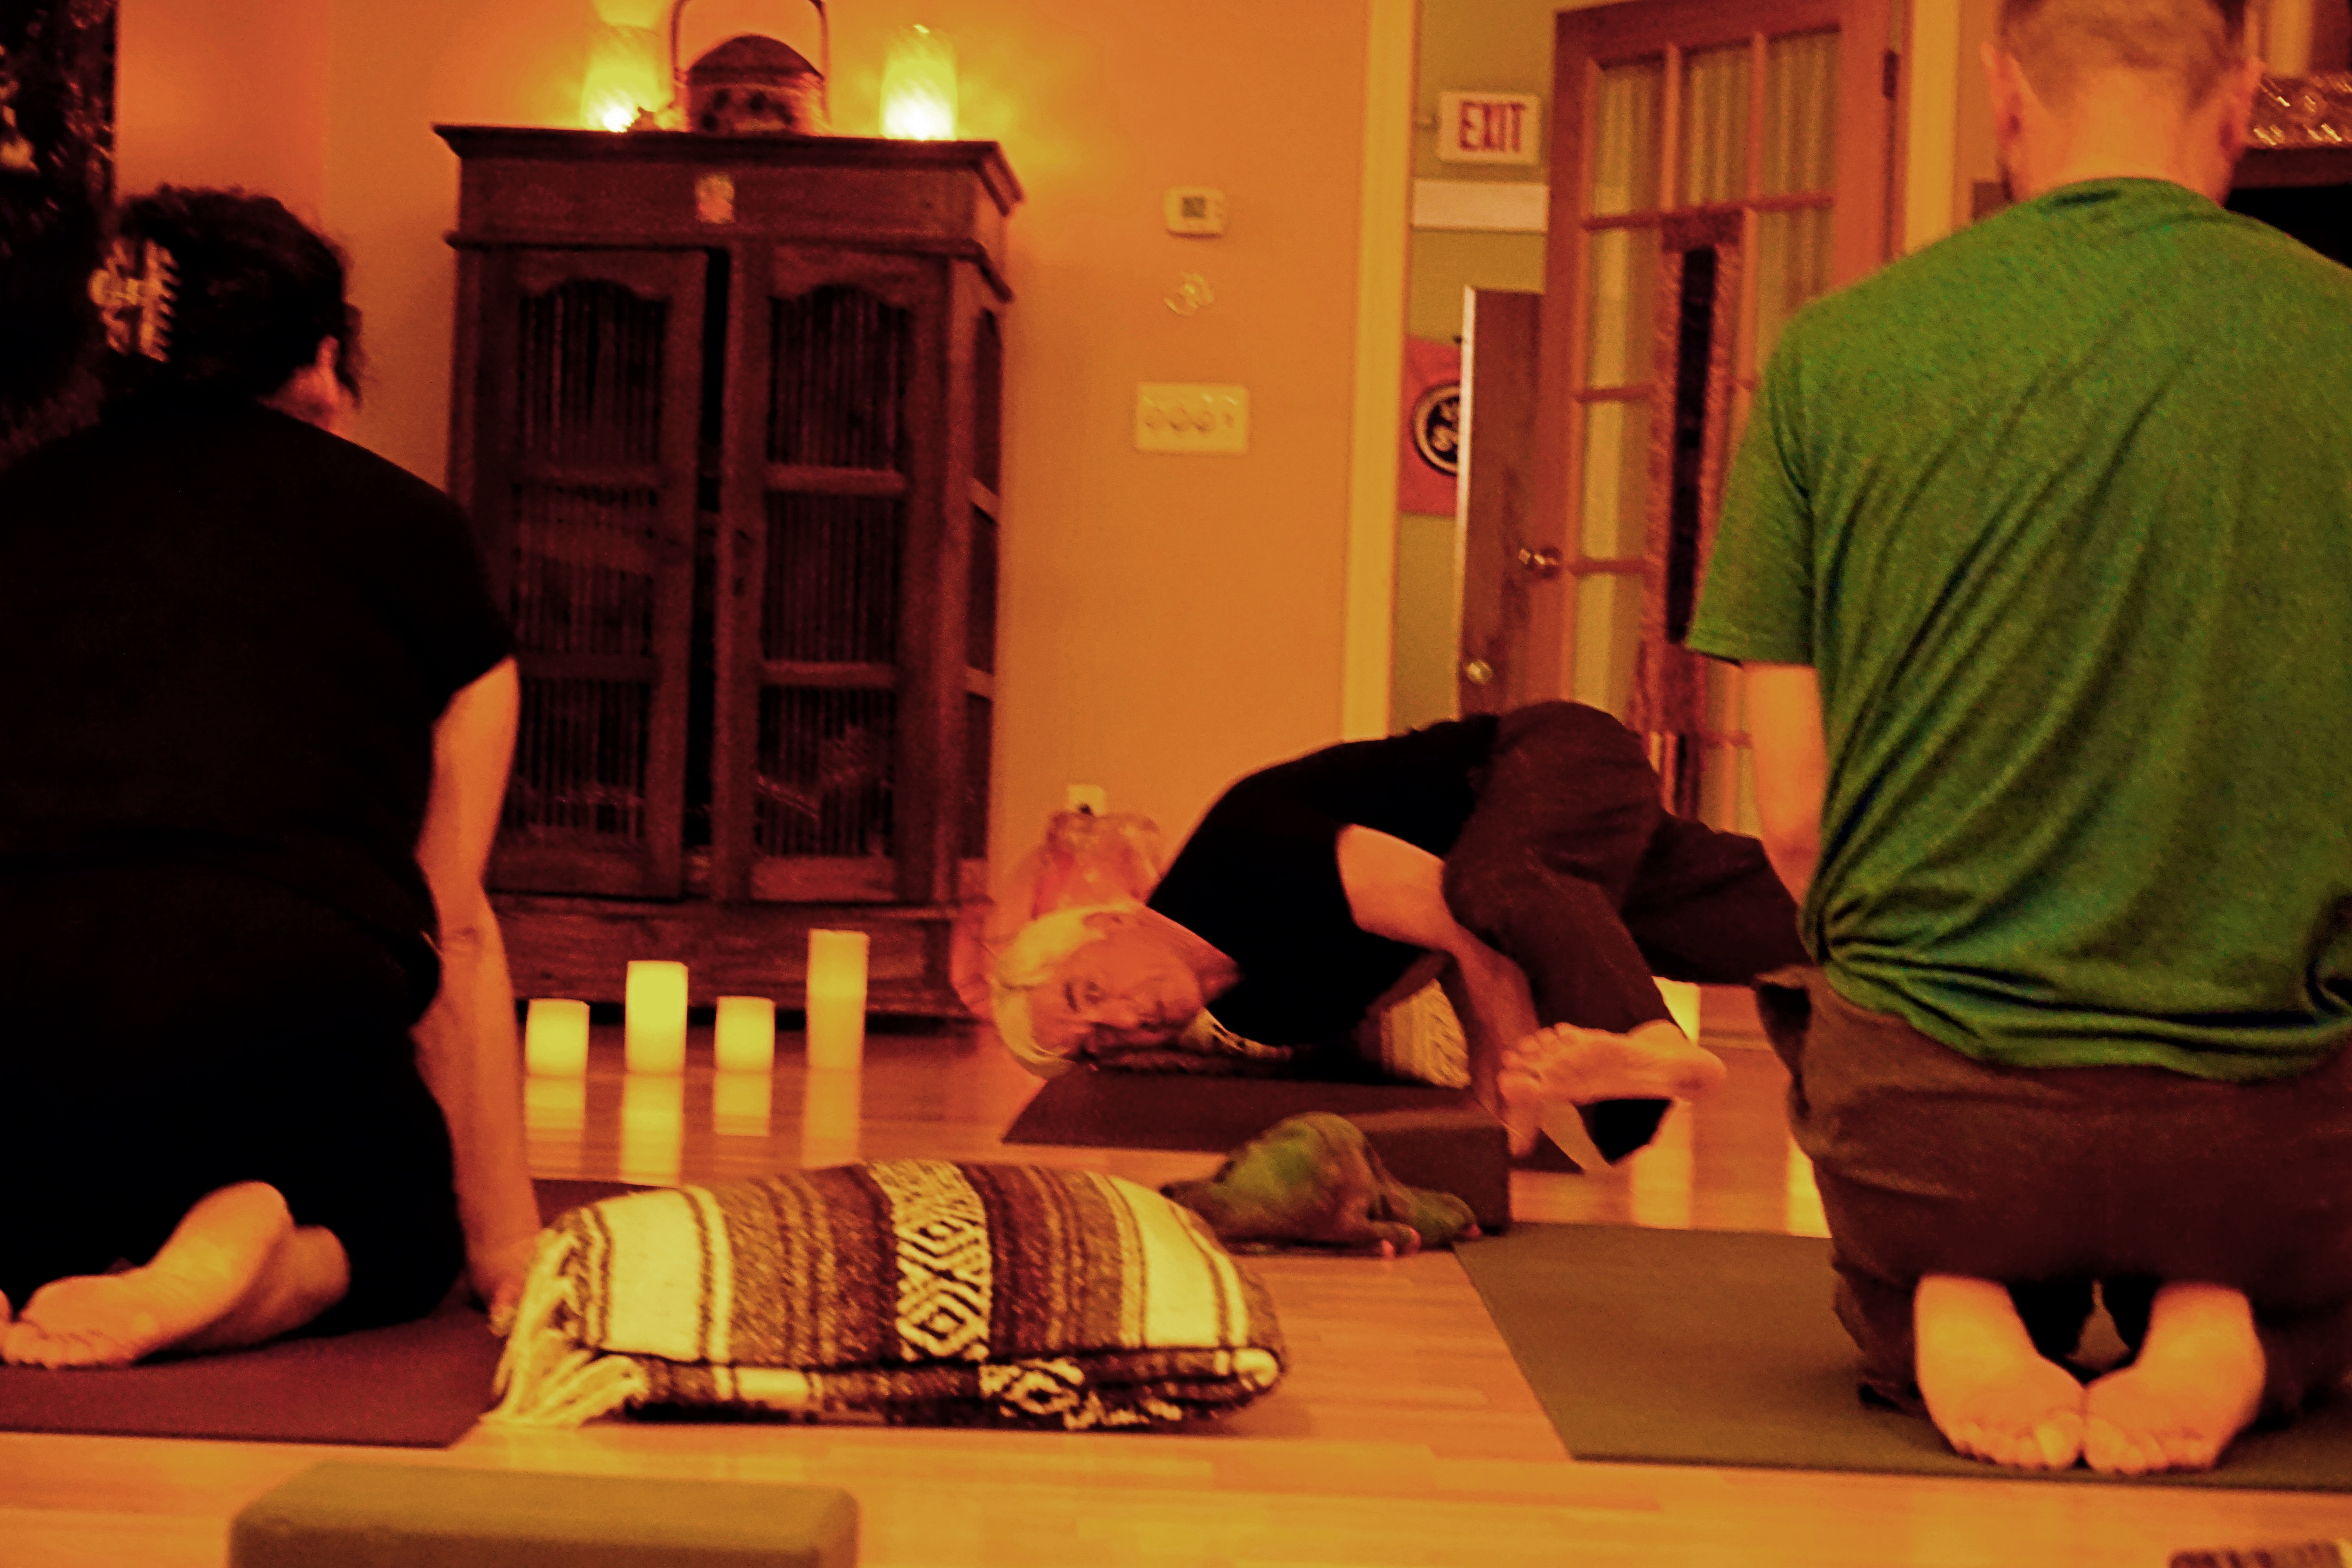 The Joyful Living Yoga Center